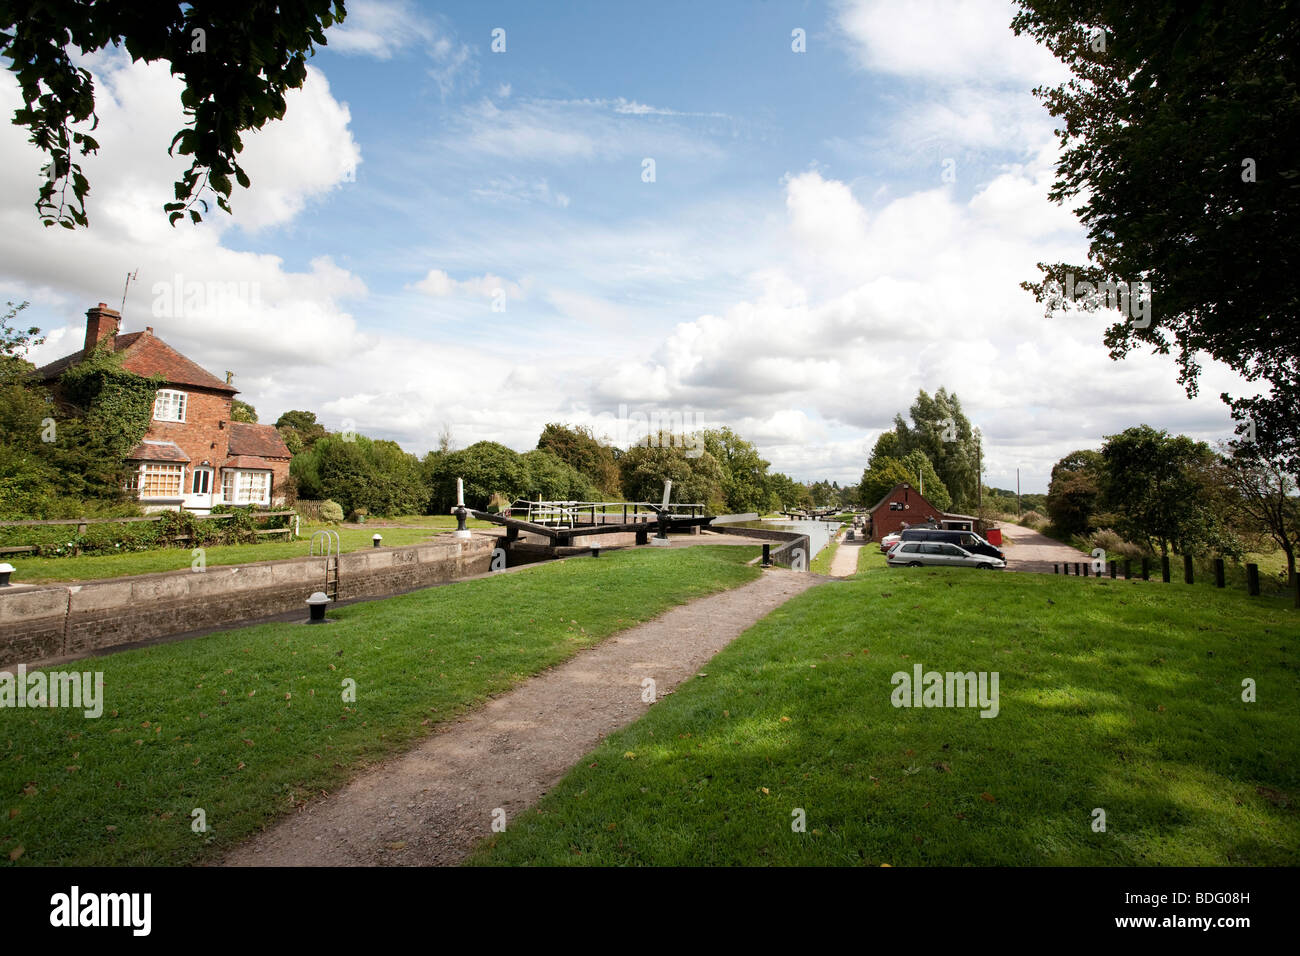 cafe and towpath at Hatton locks in Warwichshire, England - Stock Image